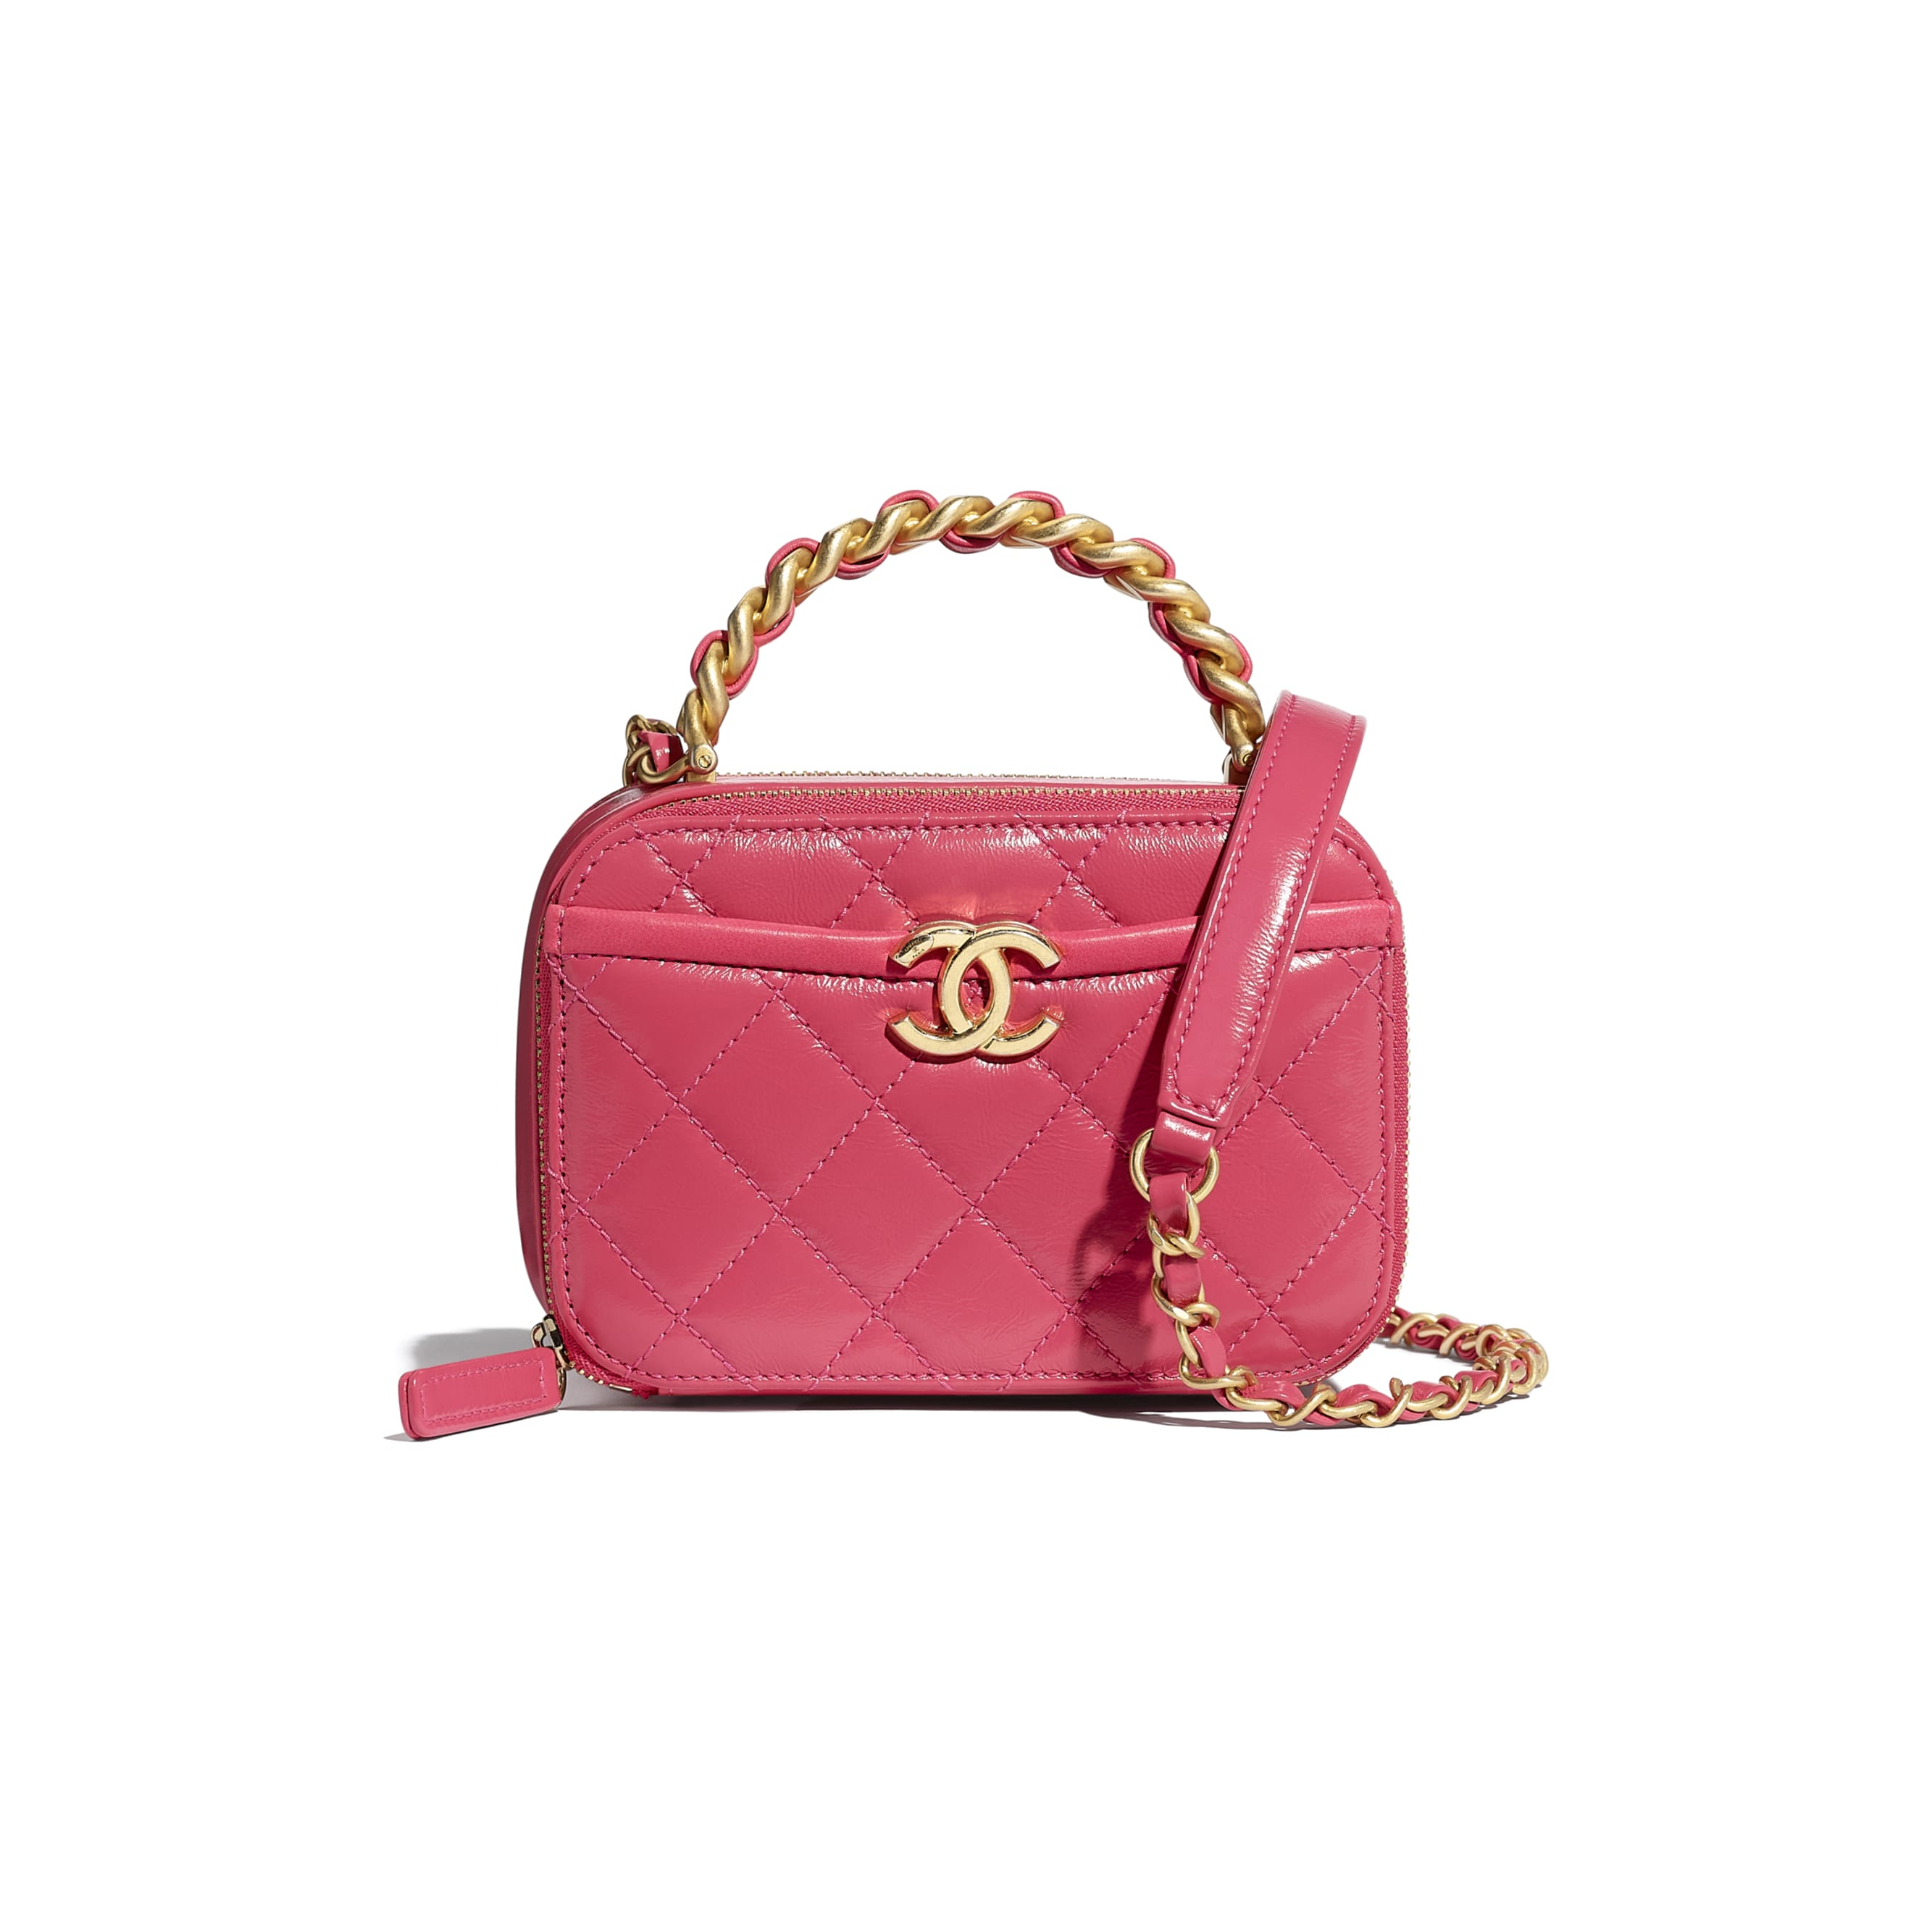 Small Vanity Case - Pink - Lambskin, Shiny Crumpled Calfskin & Gold-Tone Metal - CHANEL - Default view - see standard sized version